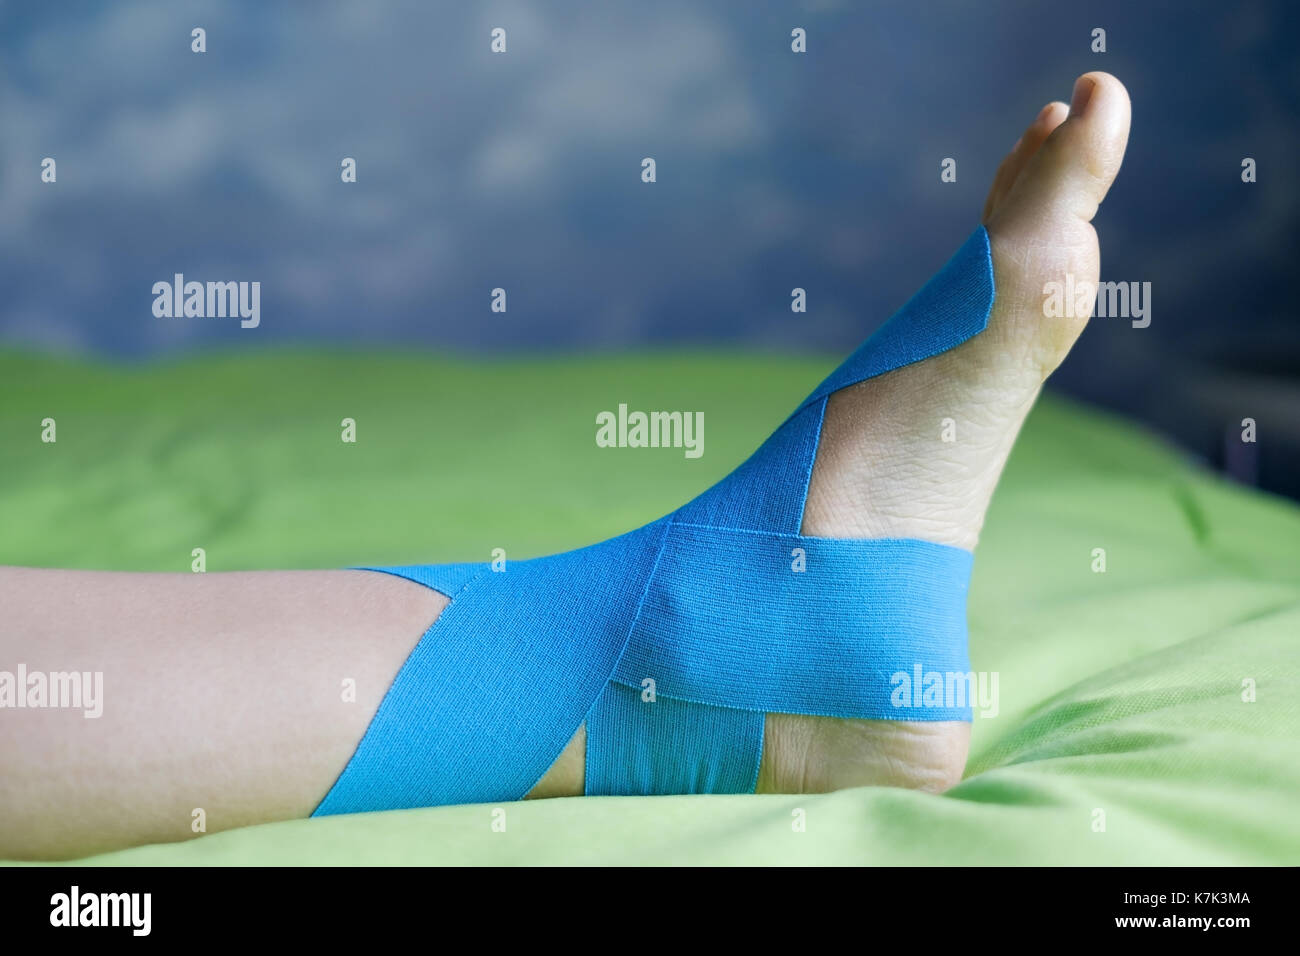 Elastic therapeutic blue tape applied to patient's left leg. - Stock Image